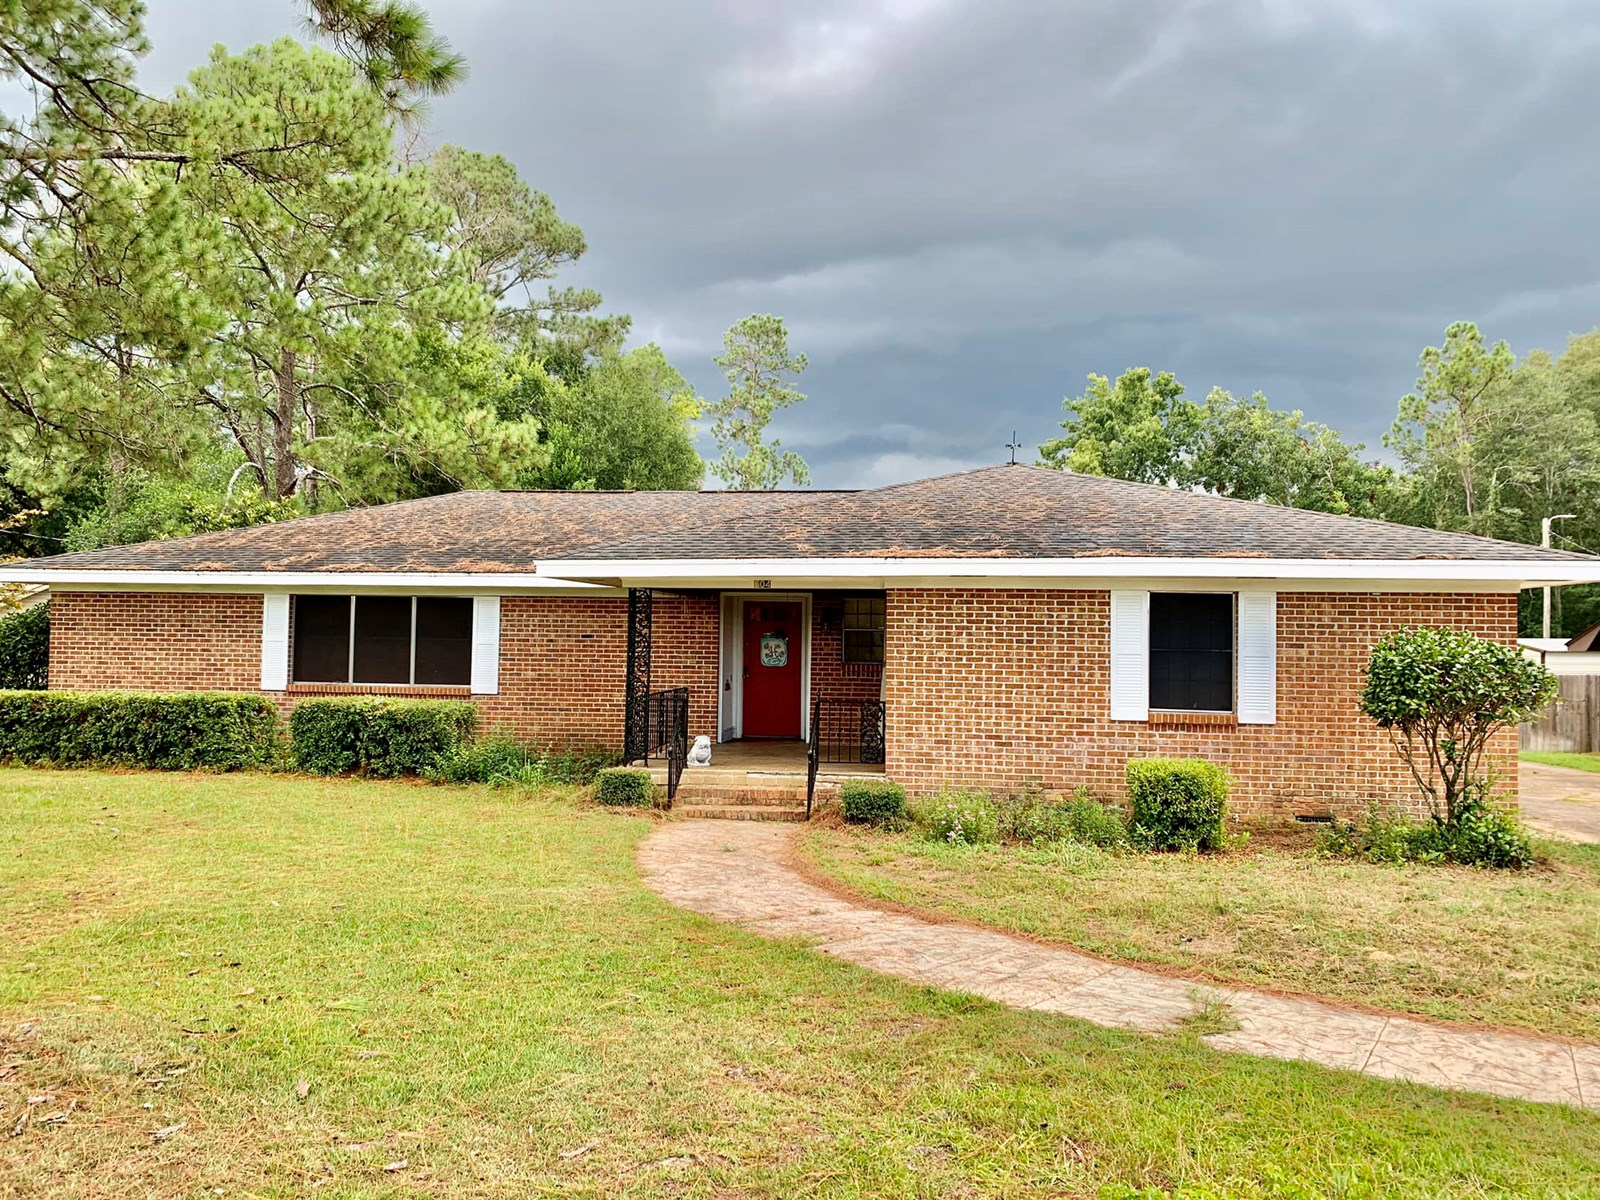 Home for sale in town of Hartford, Alabama